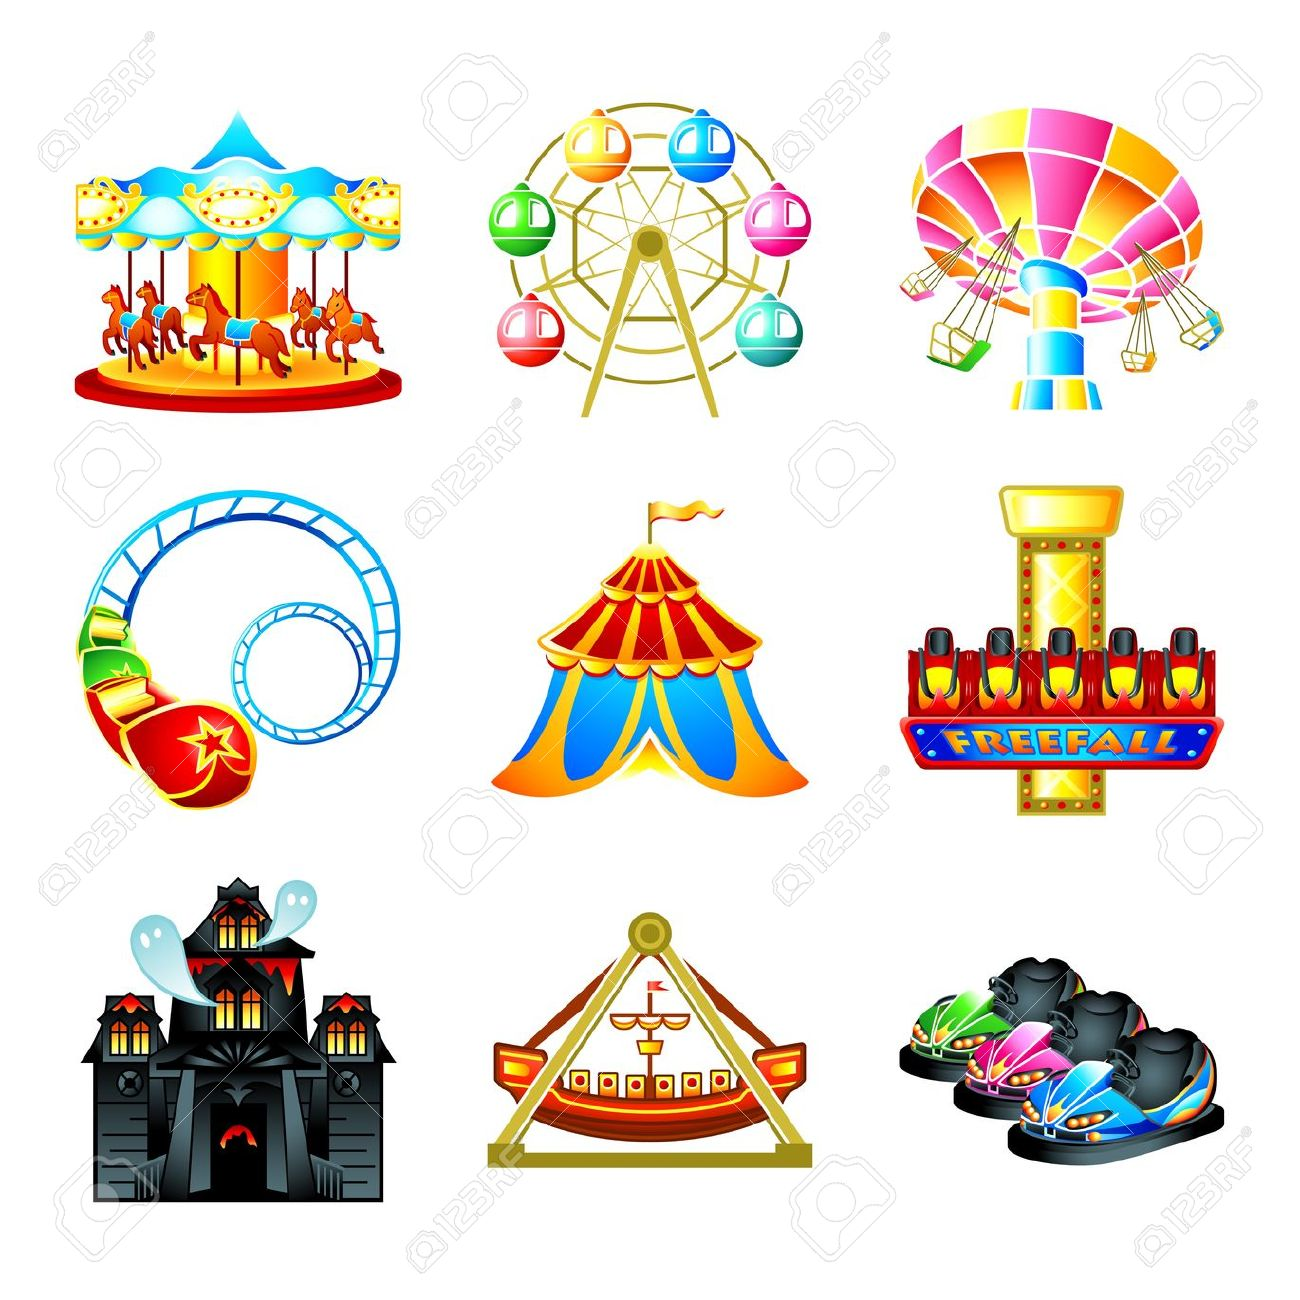 Amusement Park clipart Collection Park Rides Clipart #1